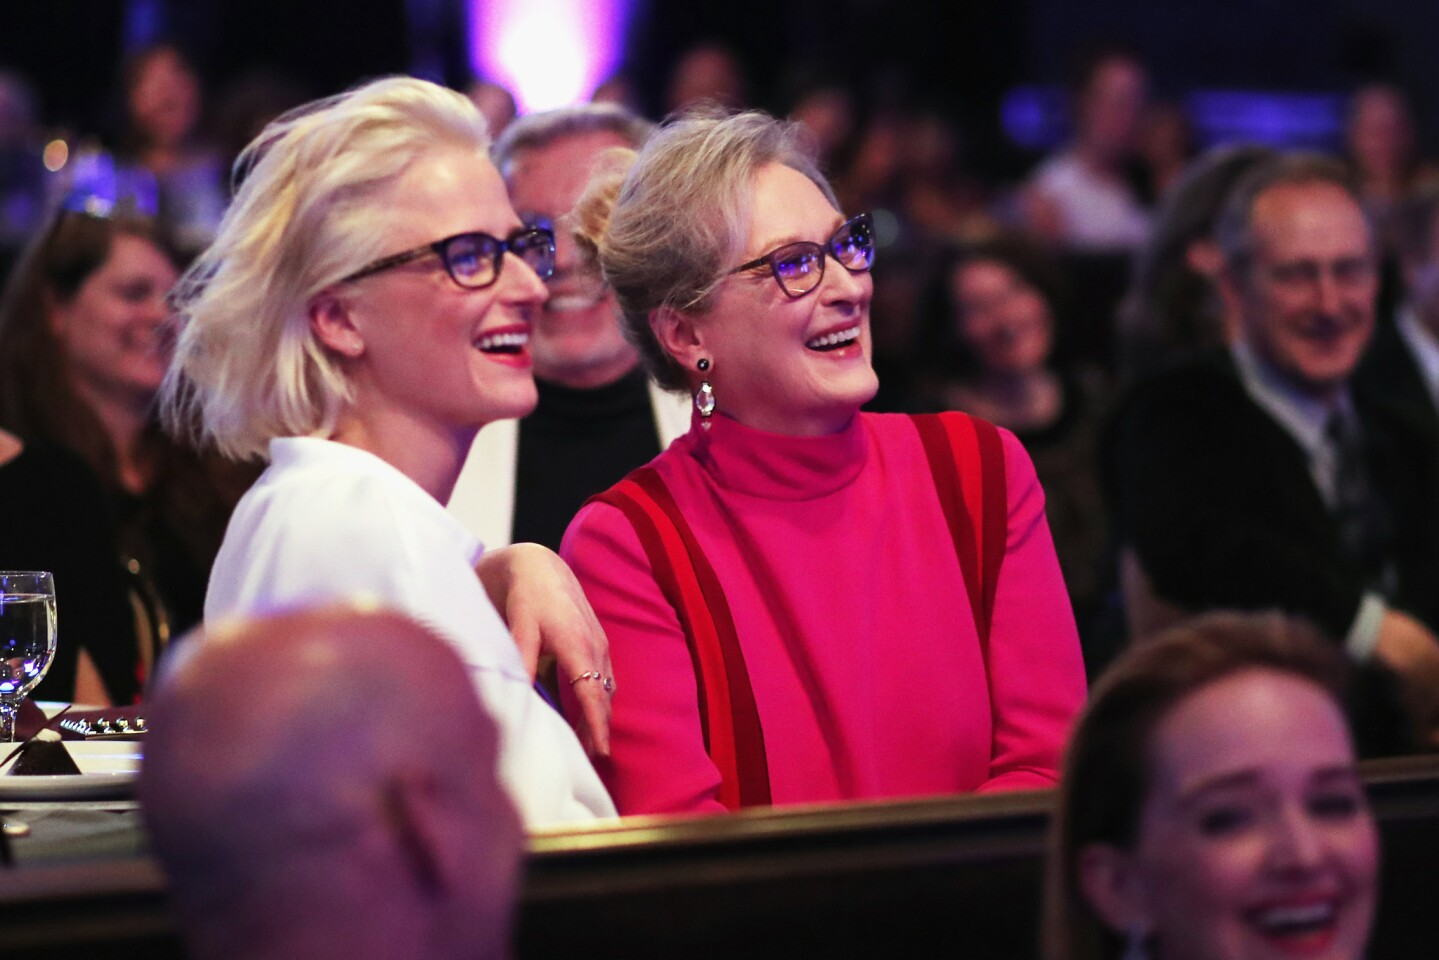 Mamie Gummer and her mother, honoree Meryl Streep, attend the 19th Costume Designers Guild Awards.